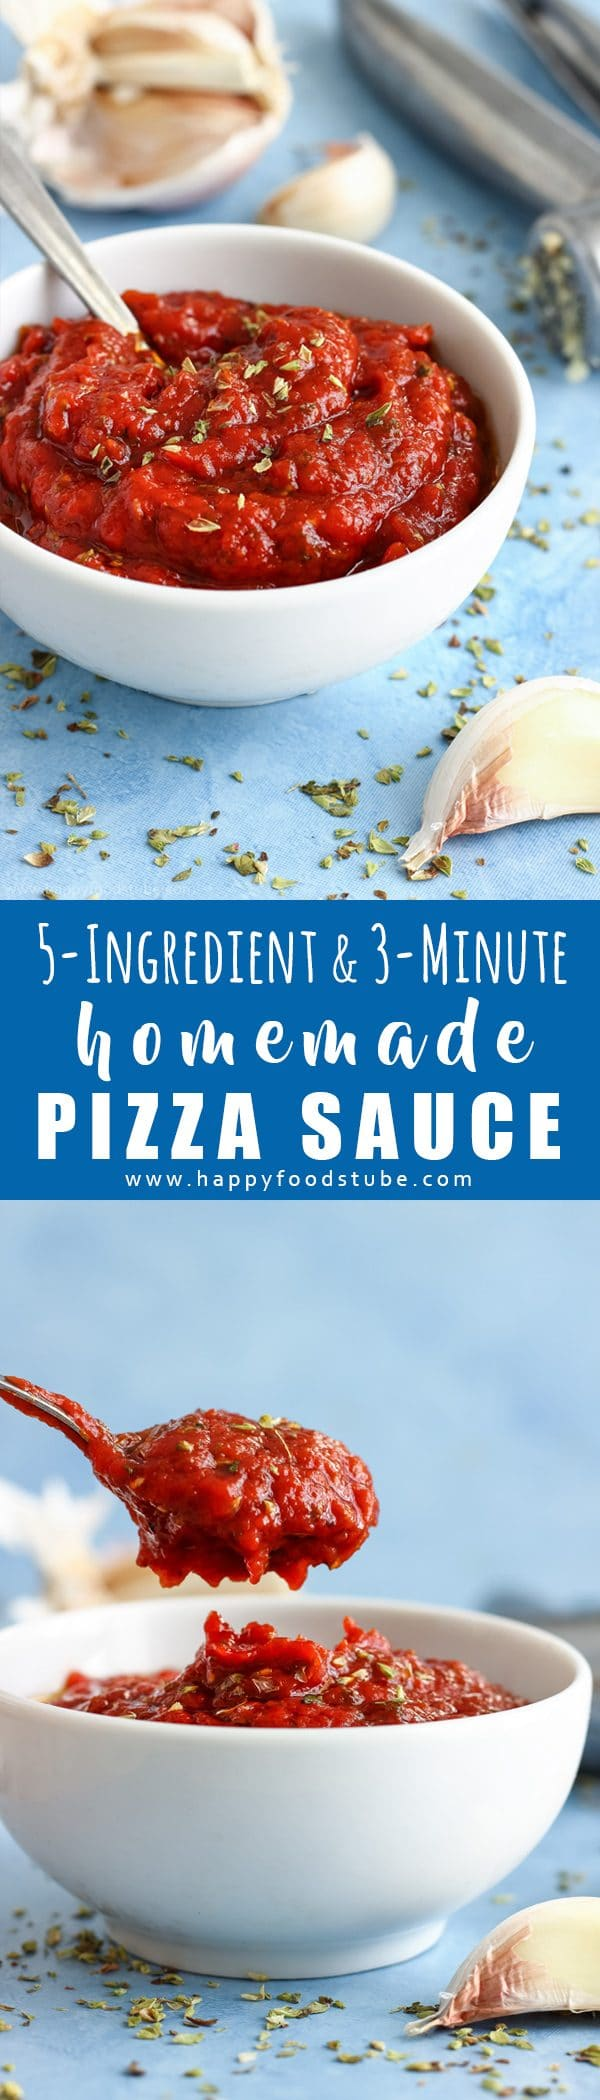 5-Ingredient & 3-Minute Homemade Pizza Sauce Recipe